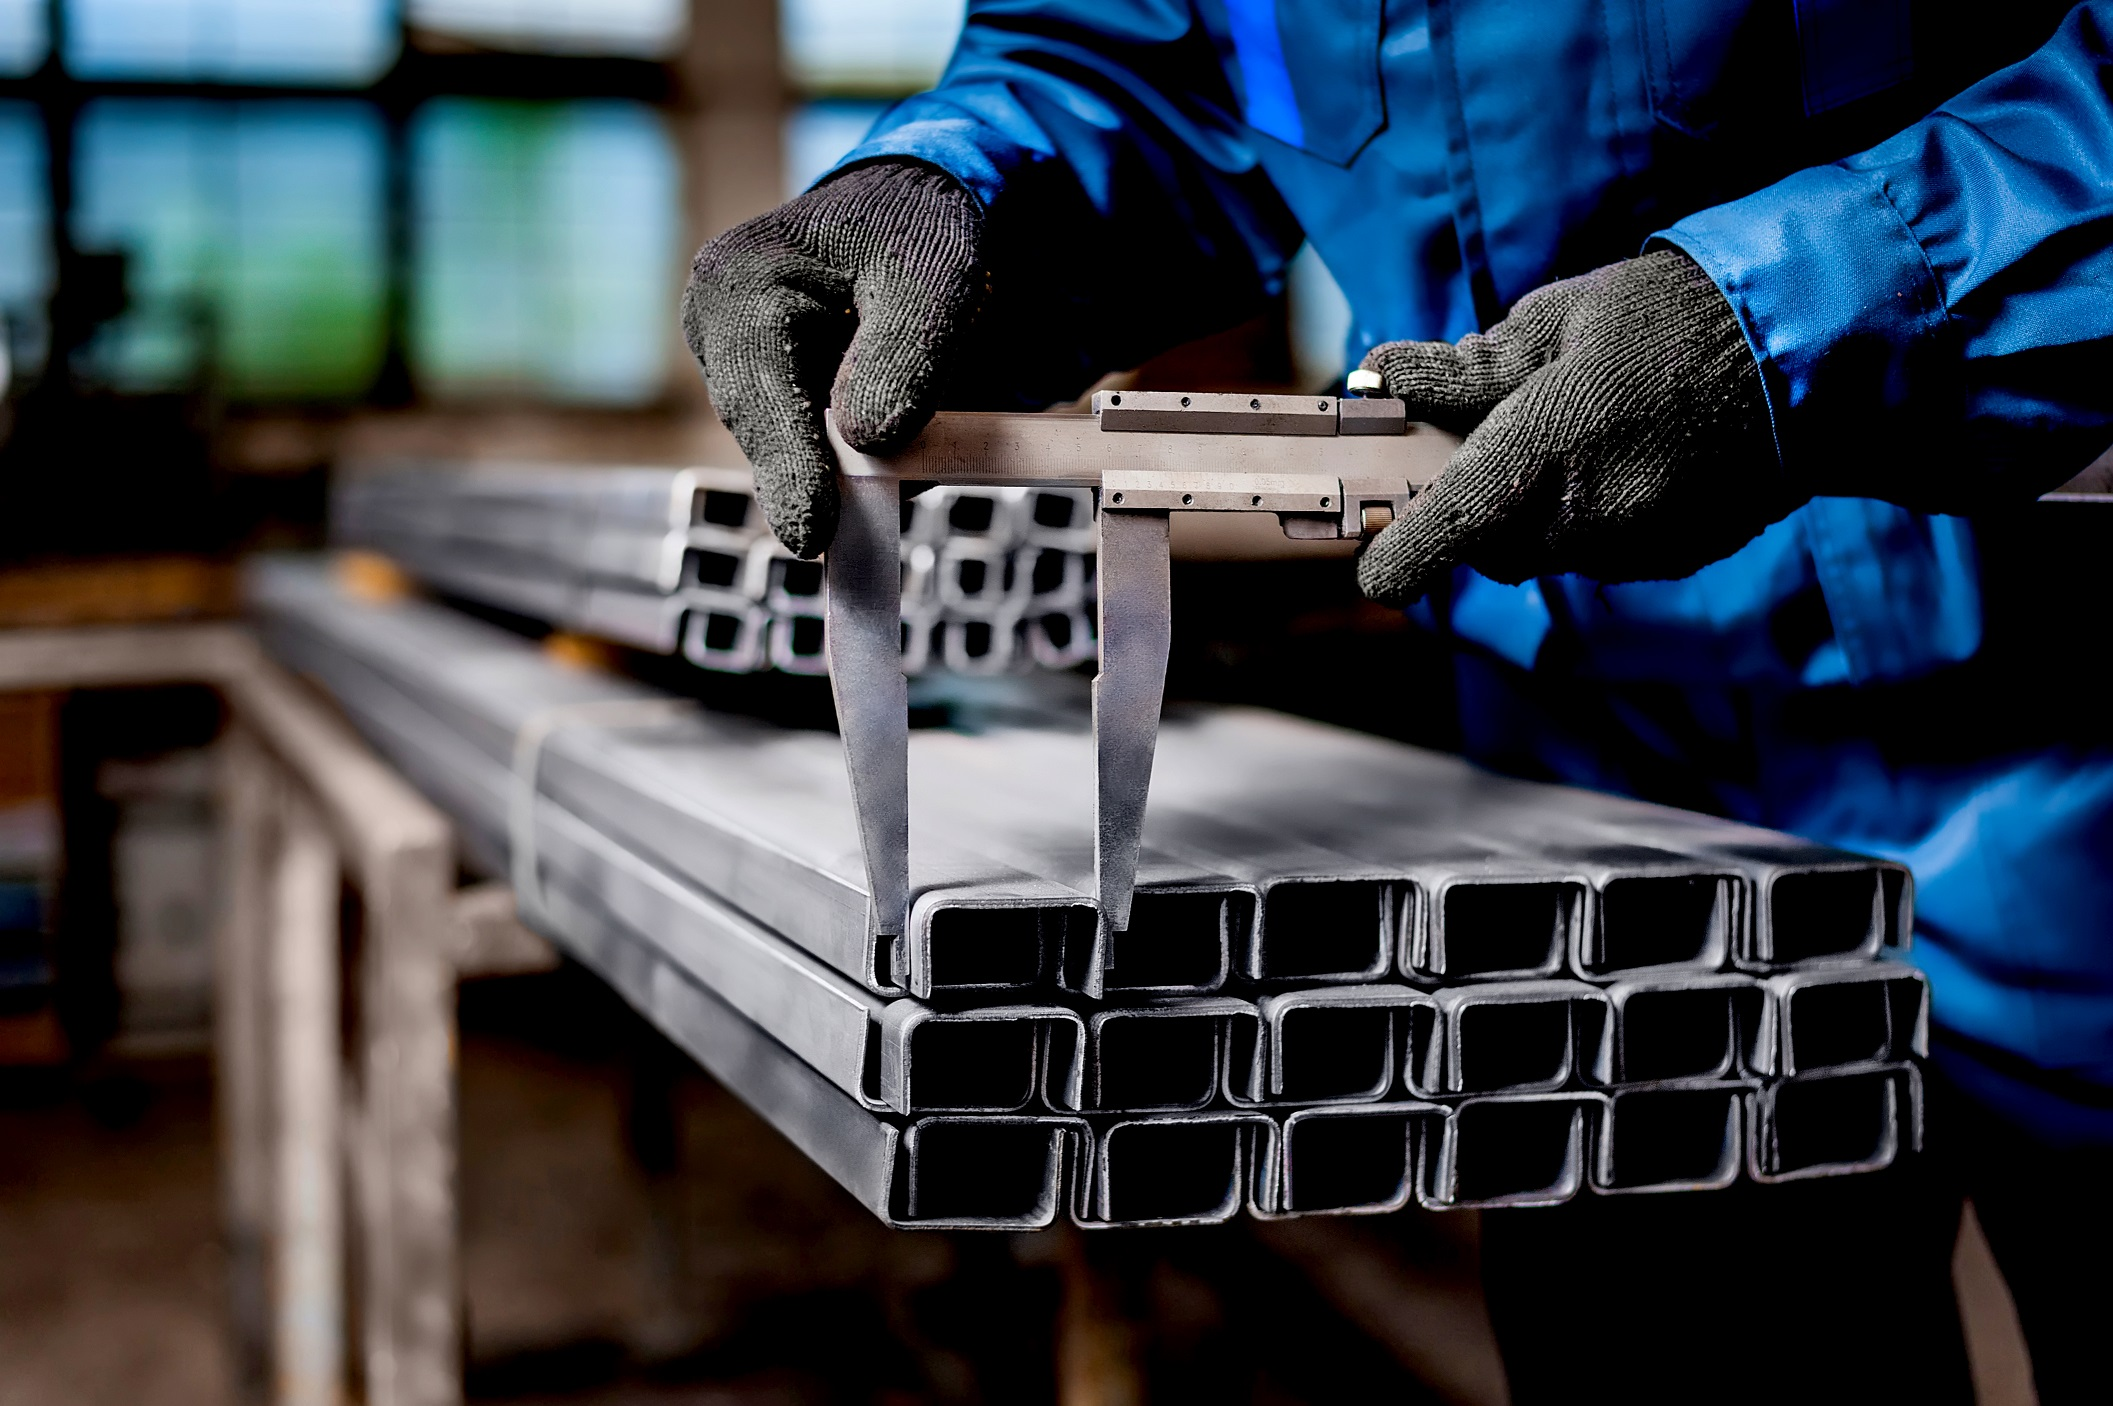 Steel and Metal Fabrication Works